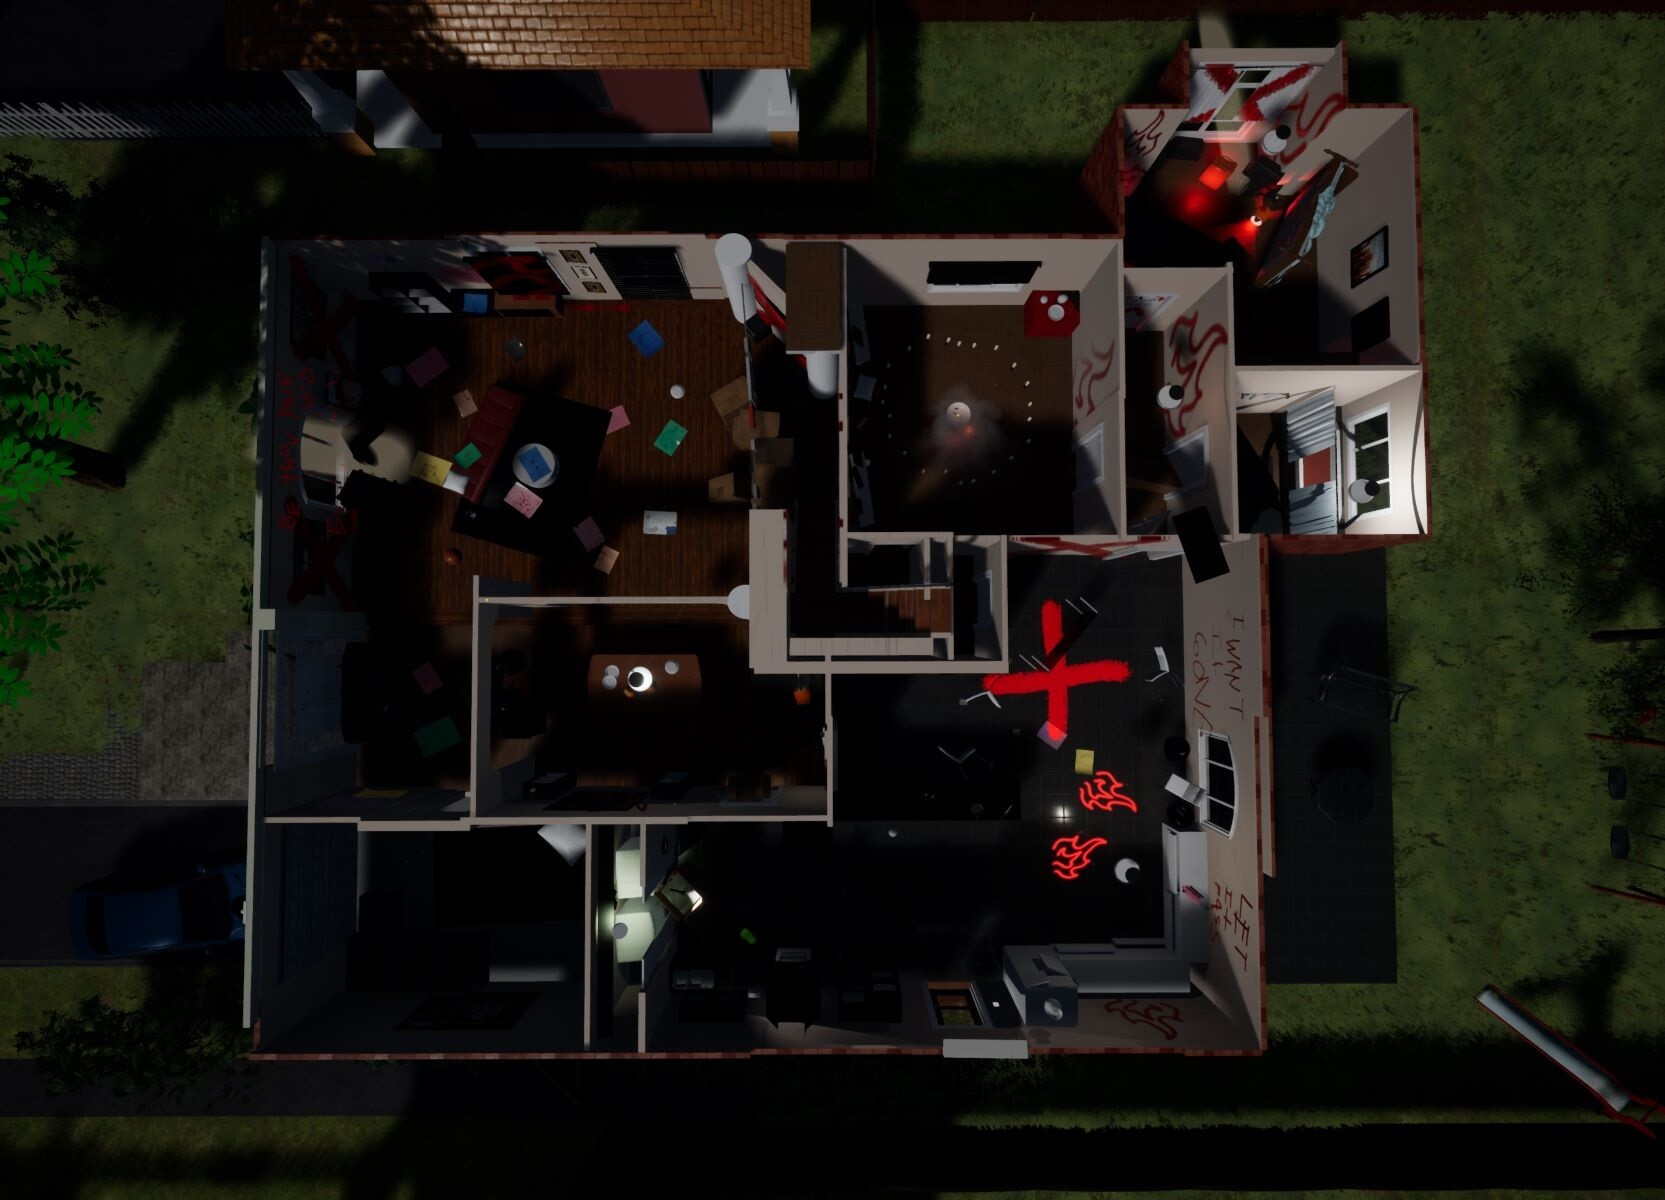 This is a overview look of the first floor. As you can see the level is small but due to combination of locked doors, exploration, and puzzle elements, this efficient space is able to give the player a satisfying single player adventure of up to 45 min